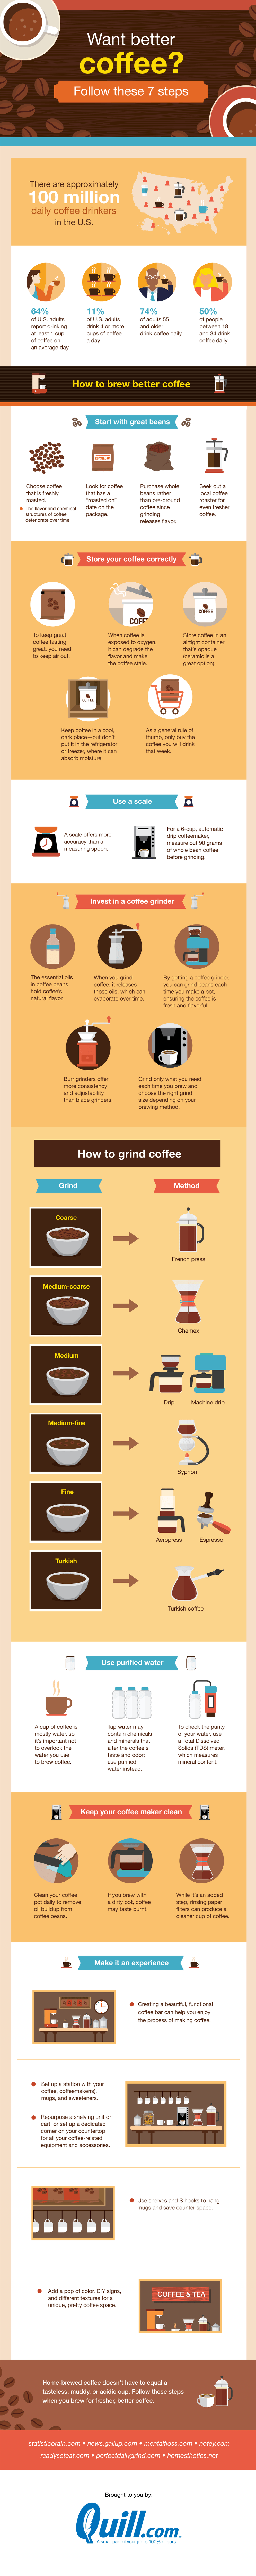 Want Better Coffee? Follow These 7 Steps infographic